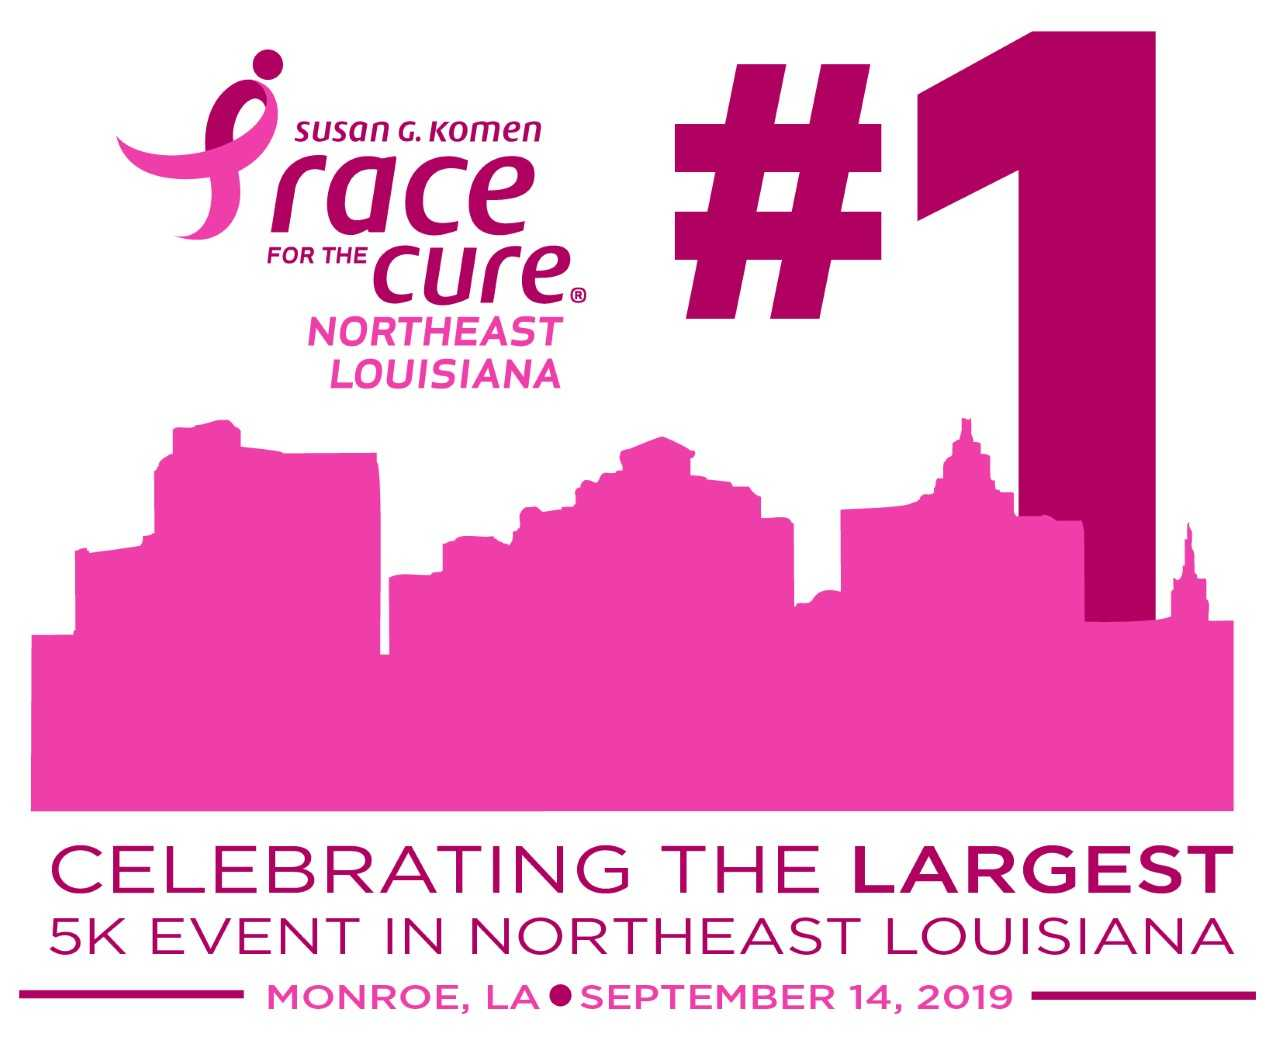 sweepstakes for the cure 2019 2019 susan g komen race for the cure ktve 5222